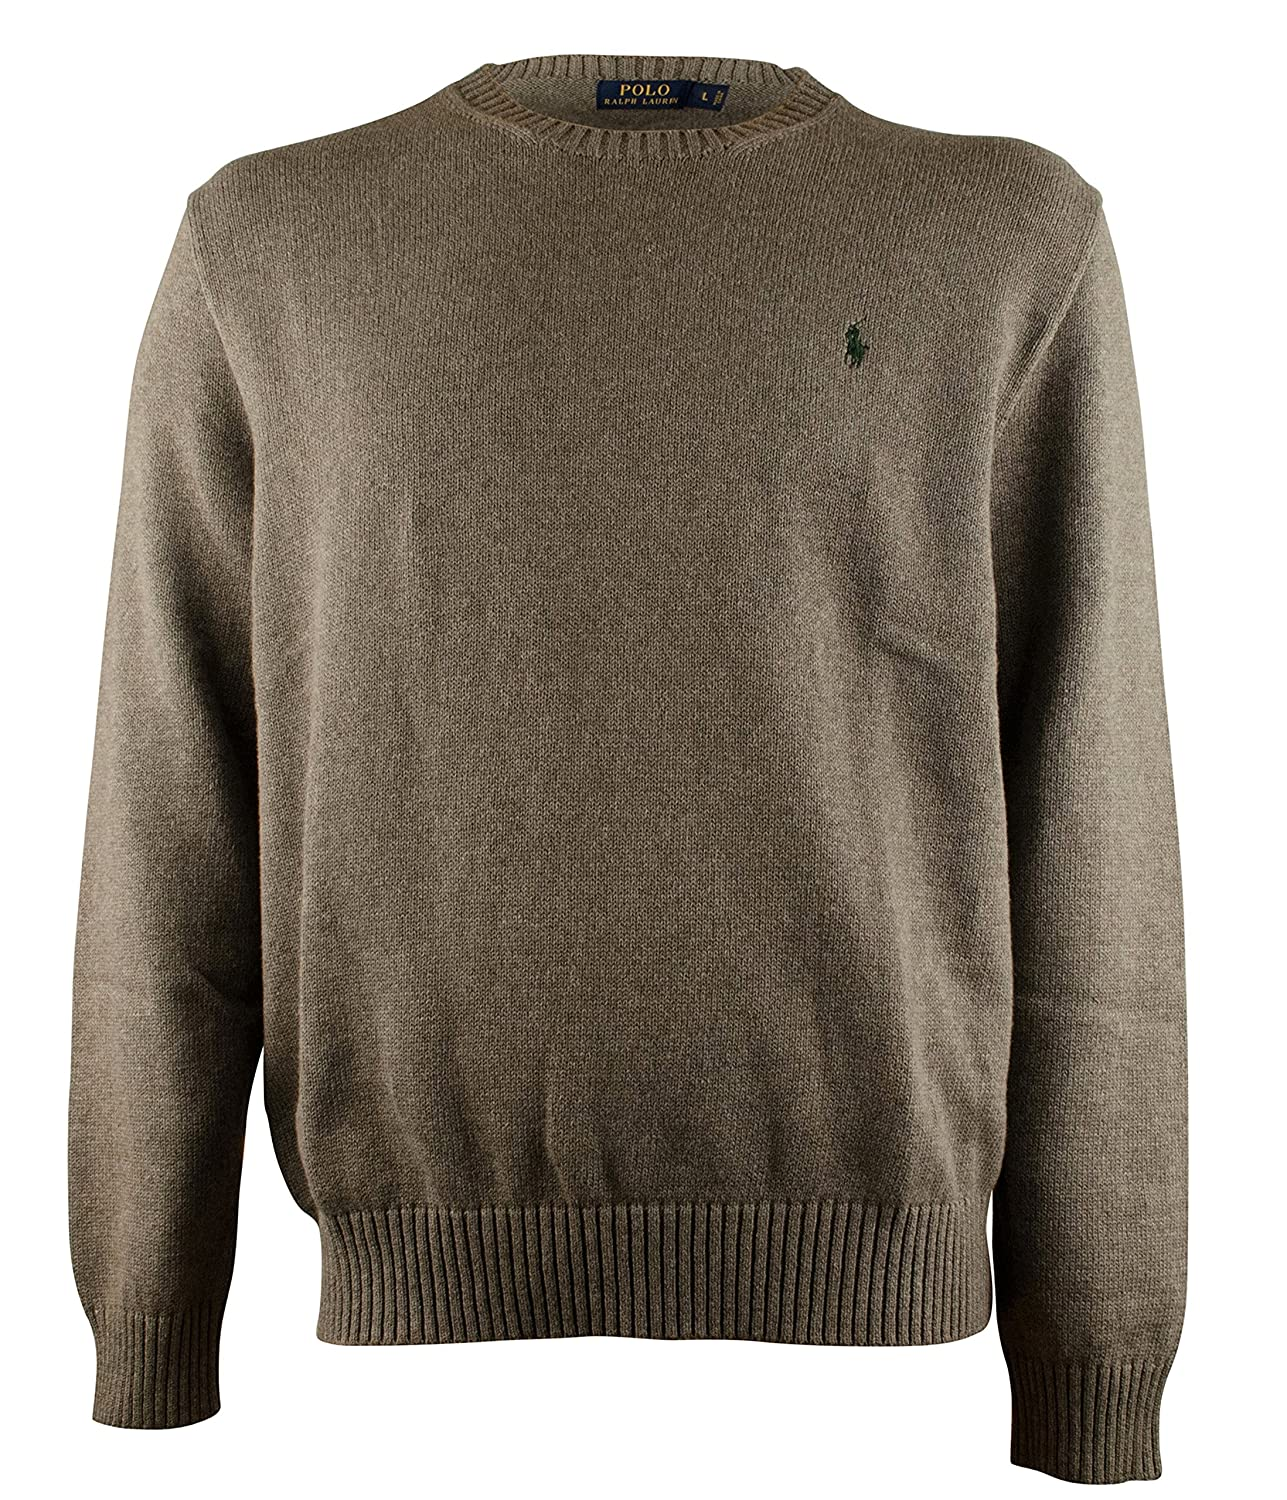 273c6c63cd3 Polo Ralph Lauren Mens Cotton Crew Neck Sweater - S - Gray at Amazon Men s  Clothing store